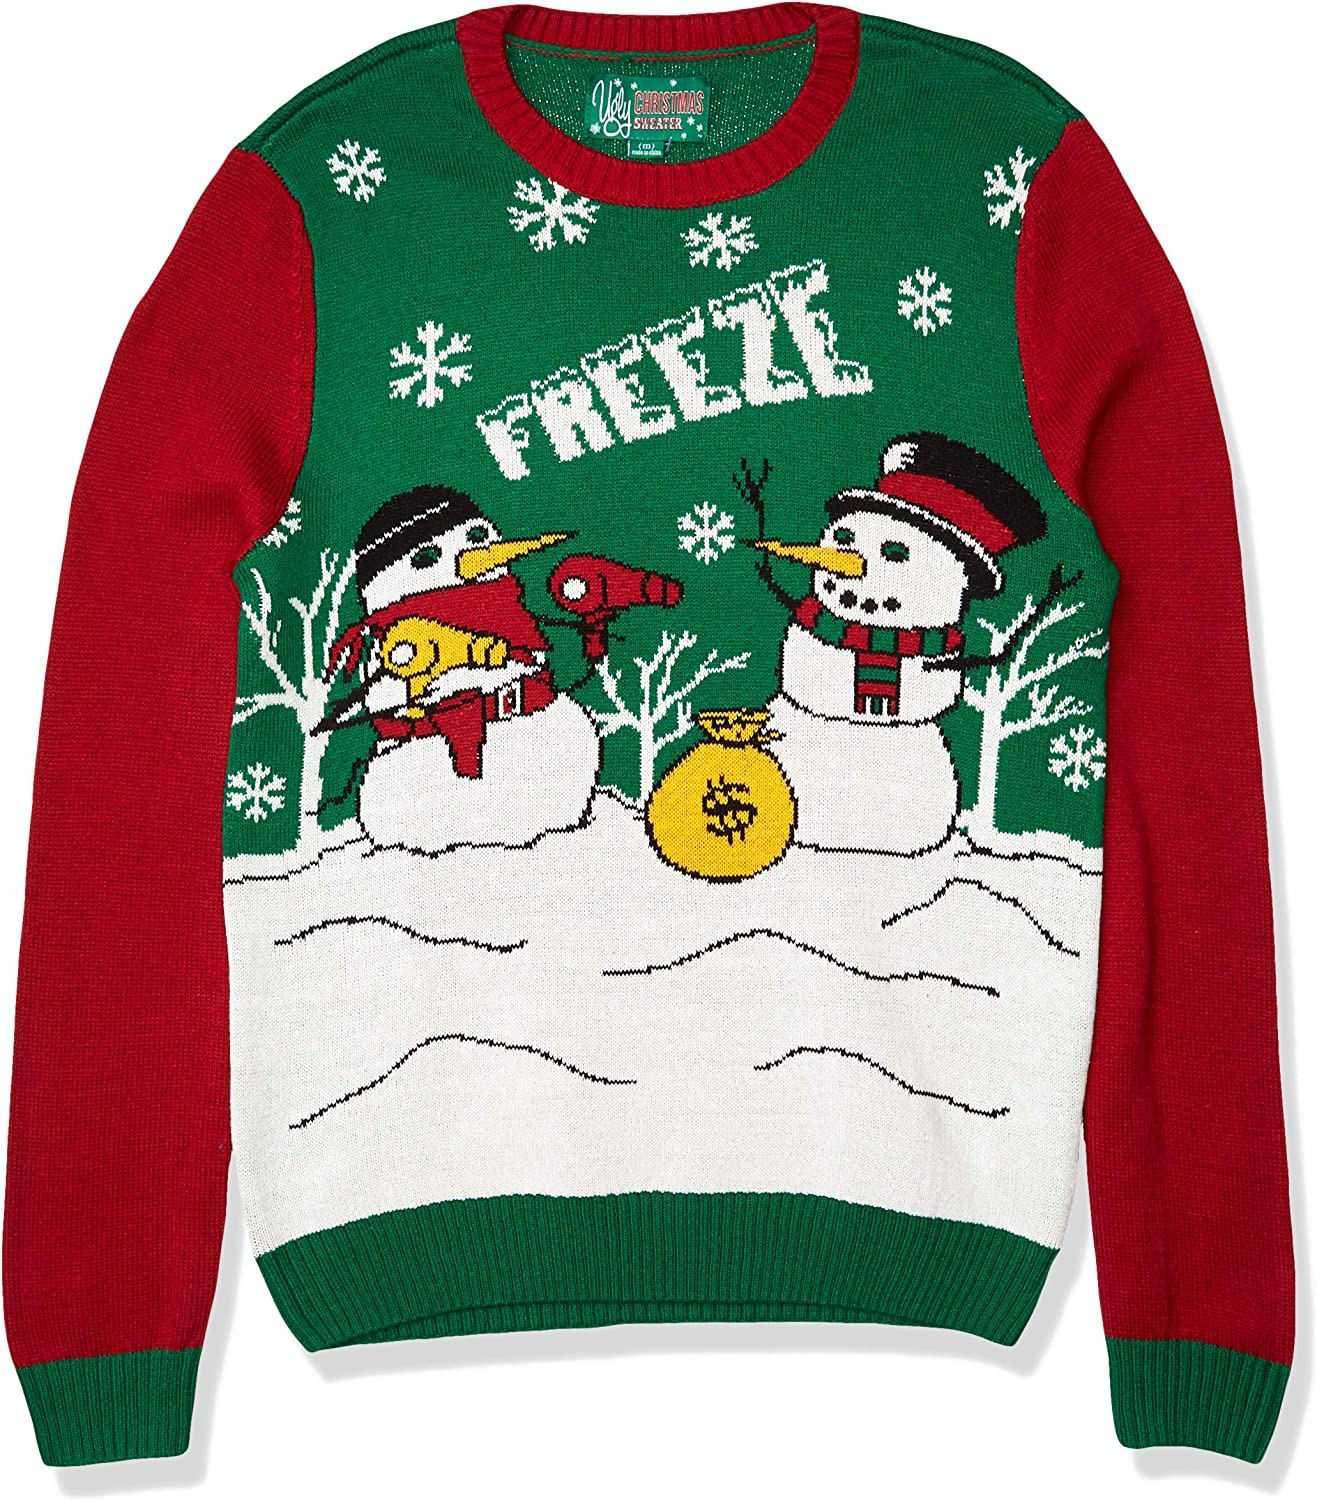 Ugly Christmas Sweater Manufacturer OFFicial shipfree shop Company Men's Assorted Sweaters Crew Neck